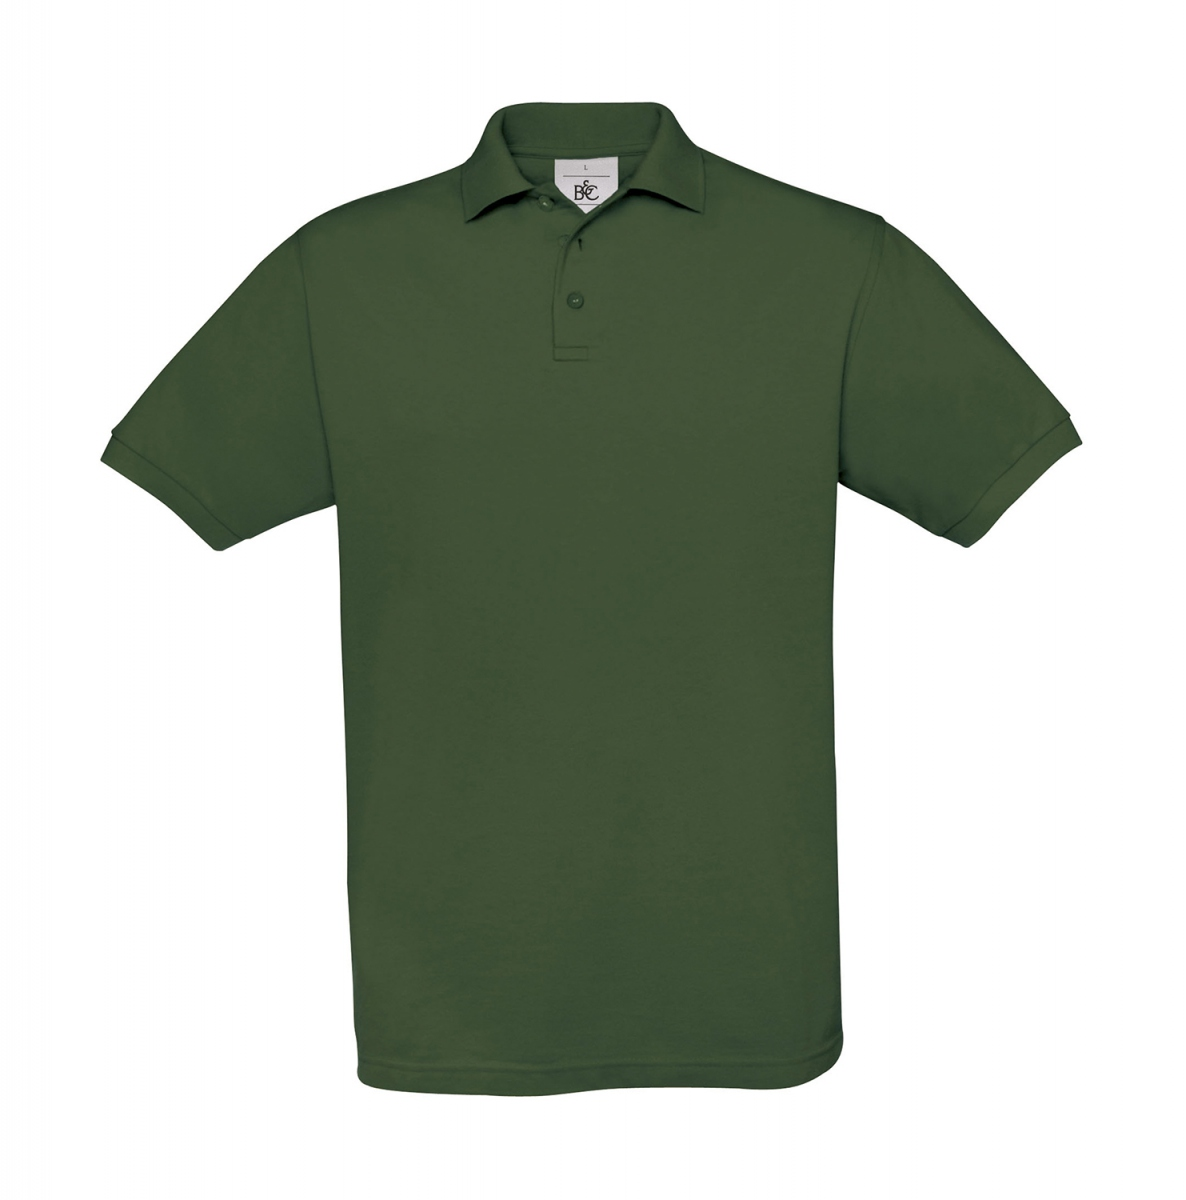 Polo manches courtes - homme - PU409 - vert bouteille